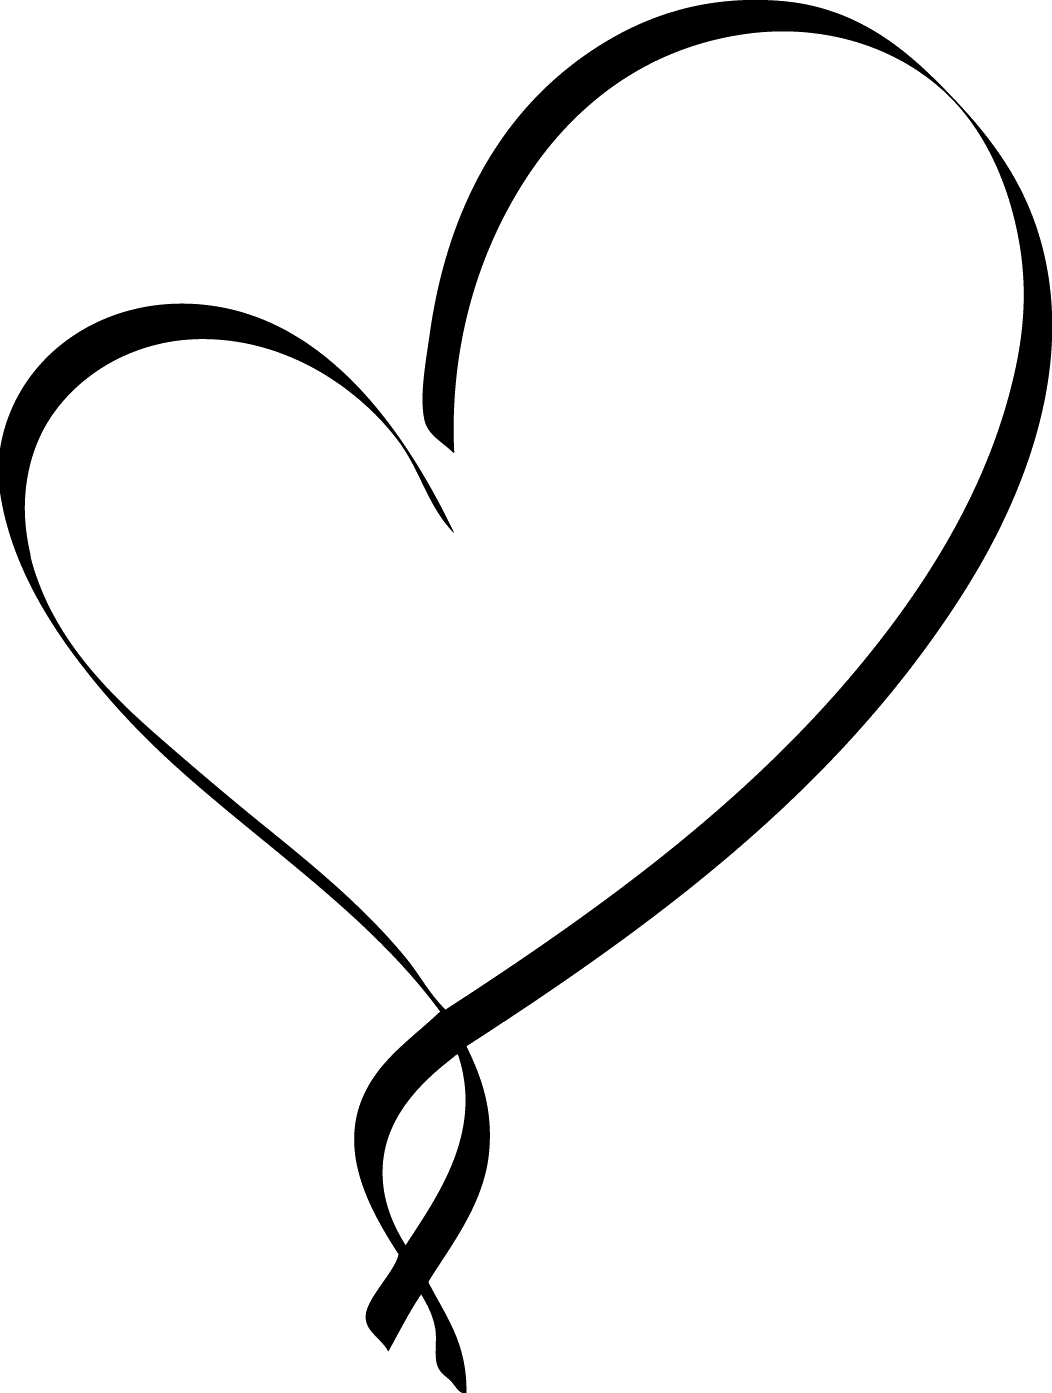 Outline pencil and in. Clipart heart calligraphy